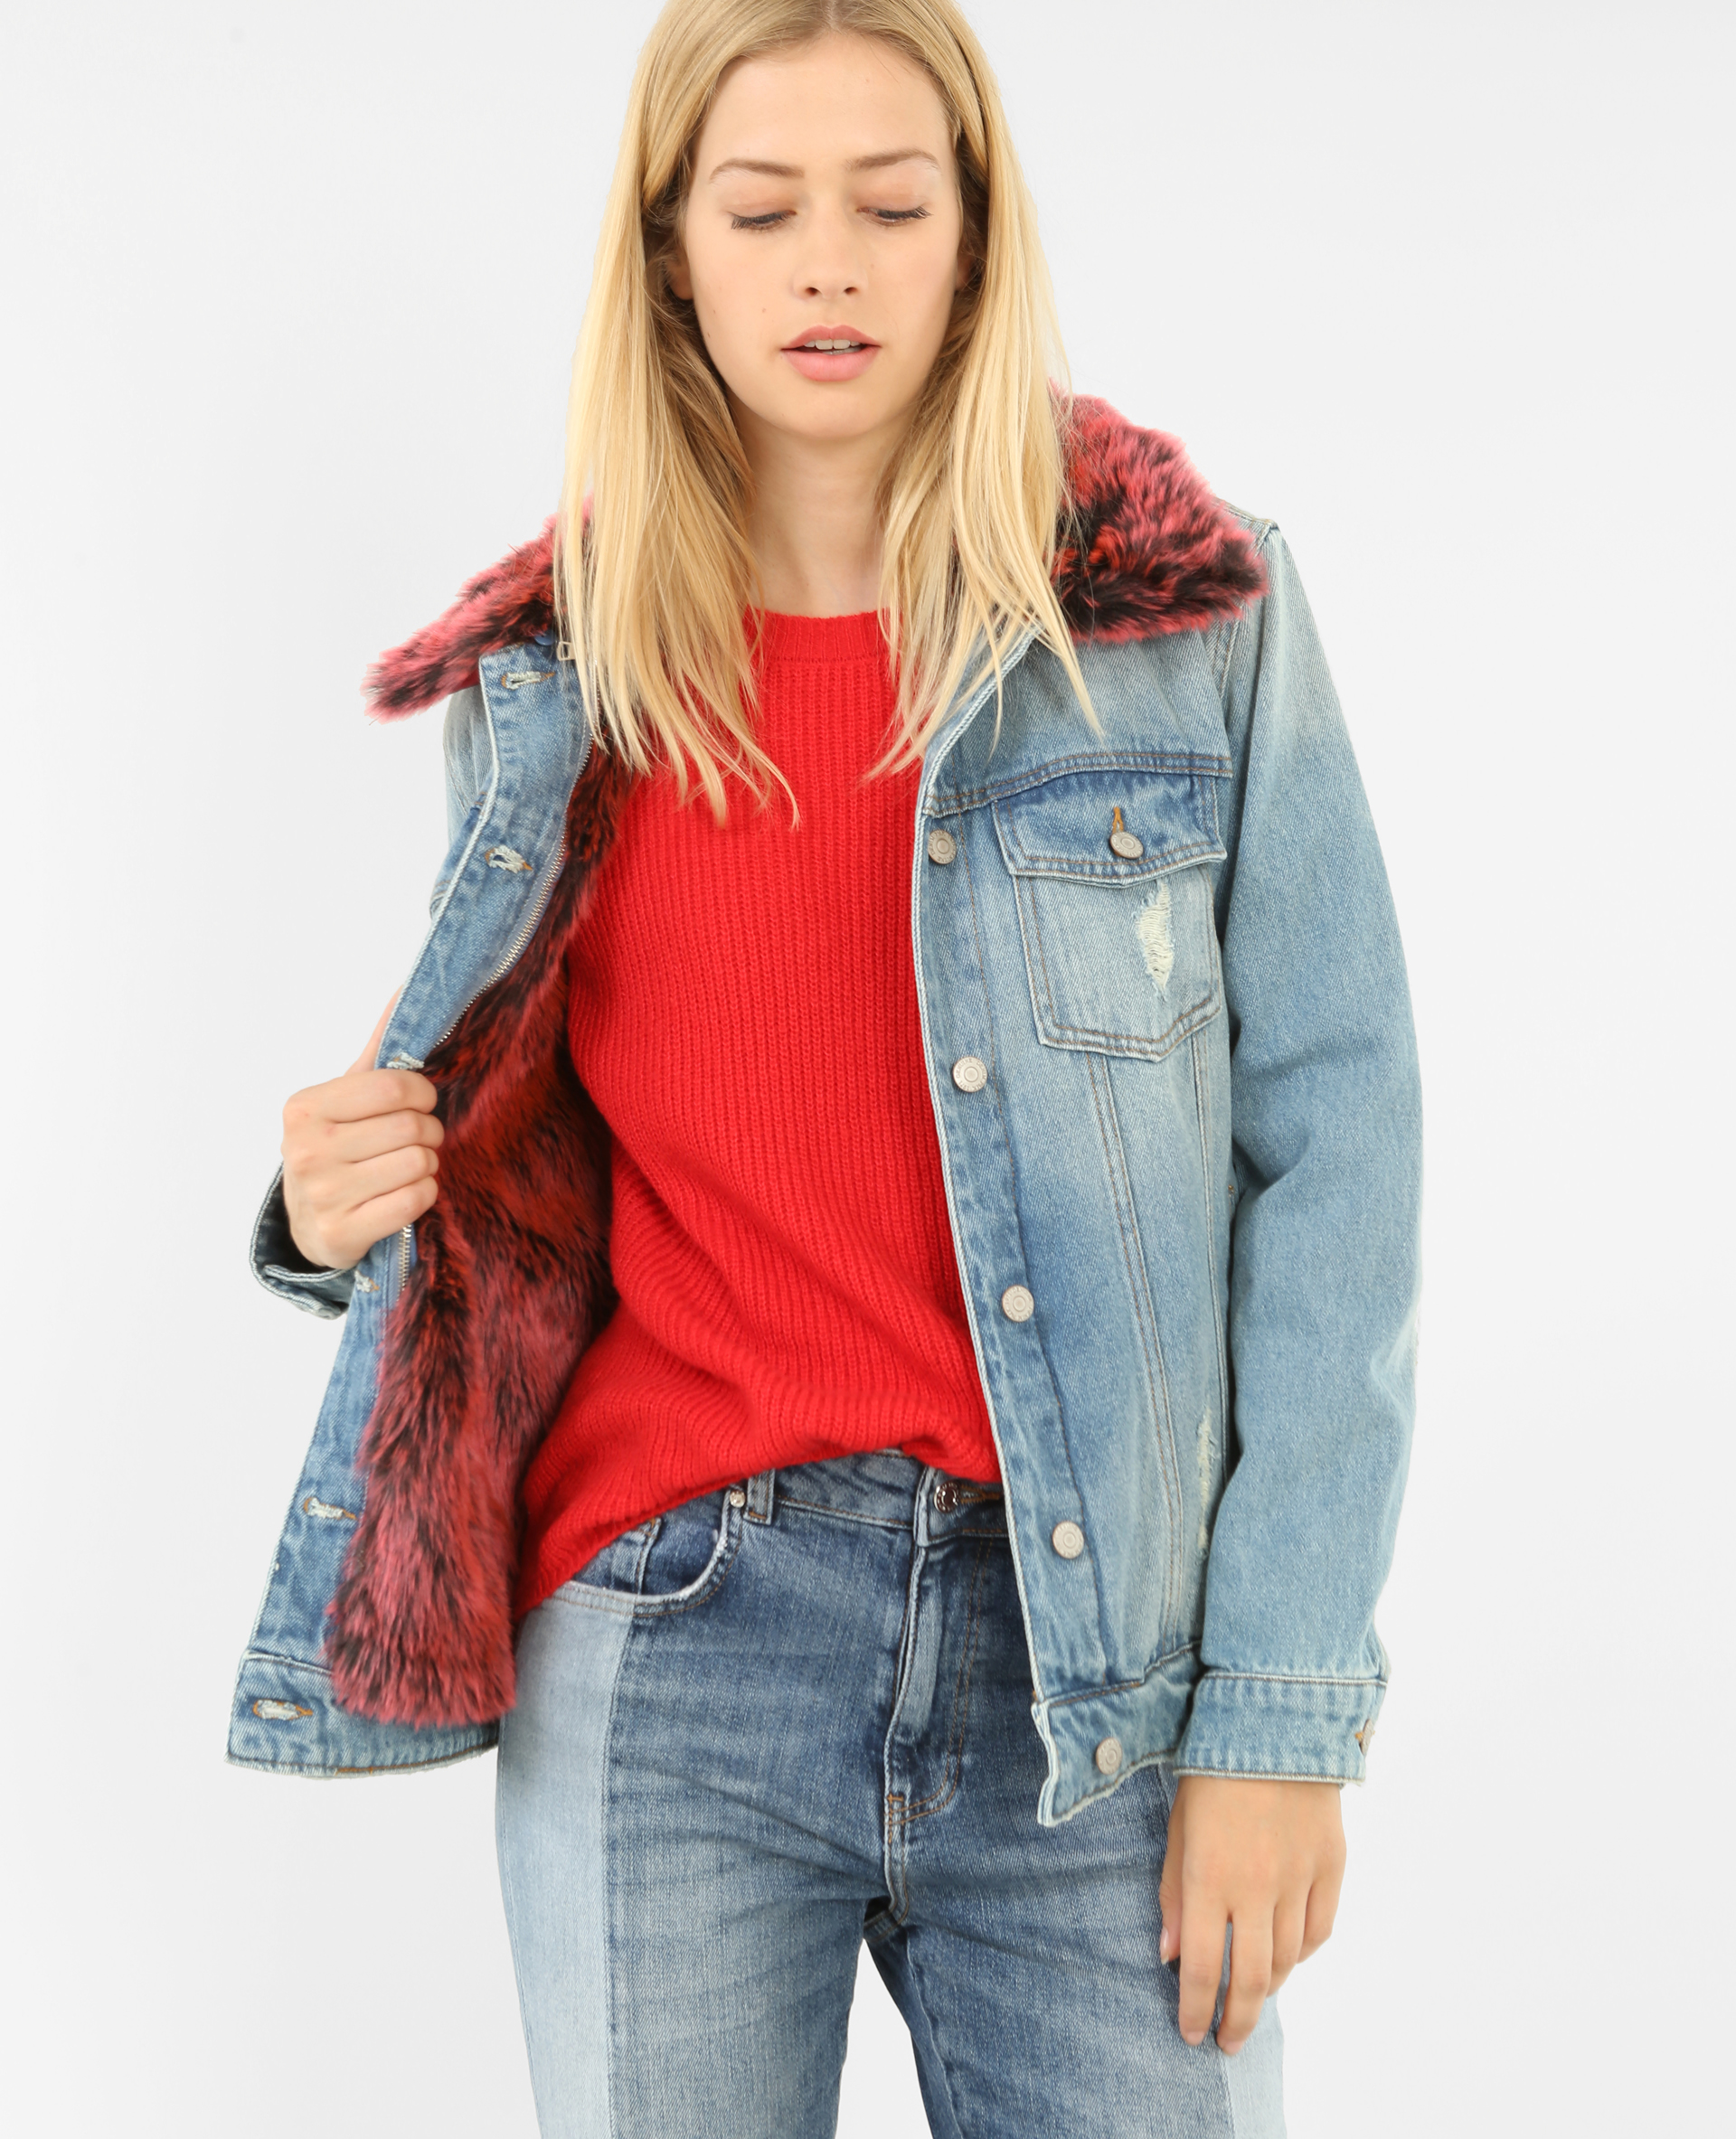 official photos c1631 20a16 Giubbotto in jeans stampa